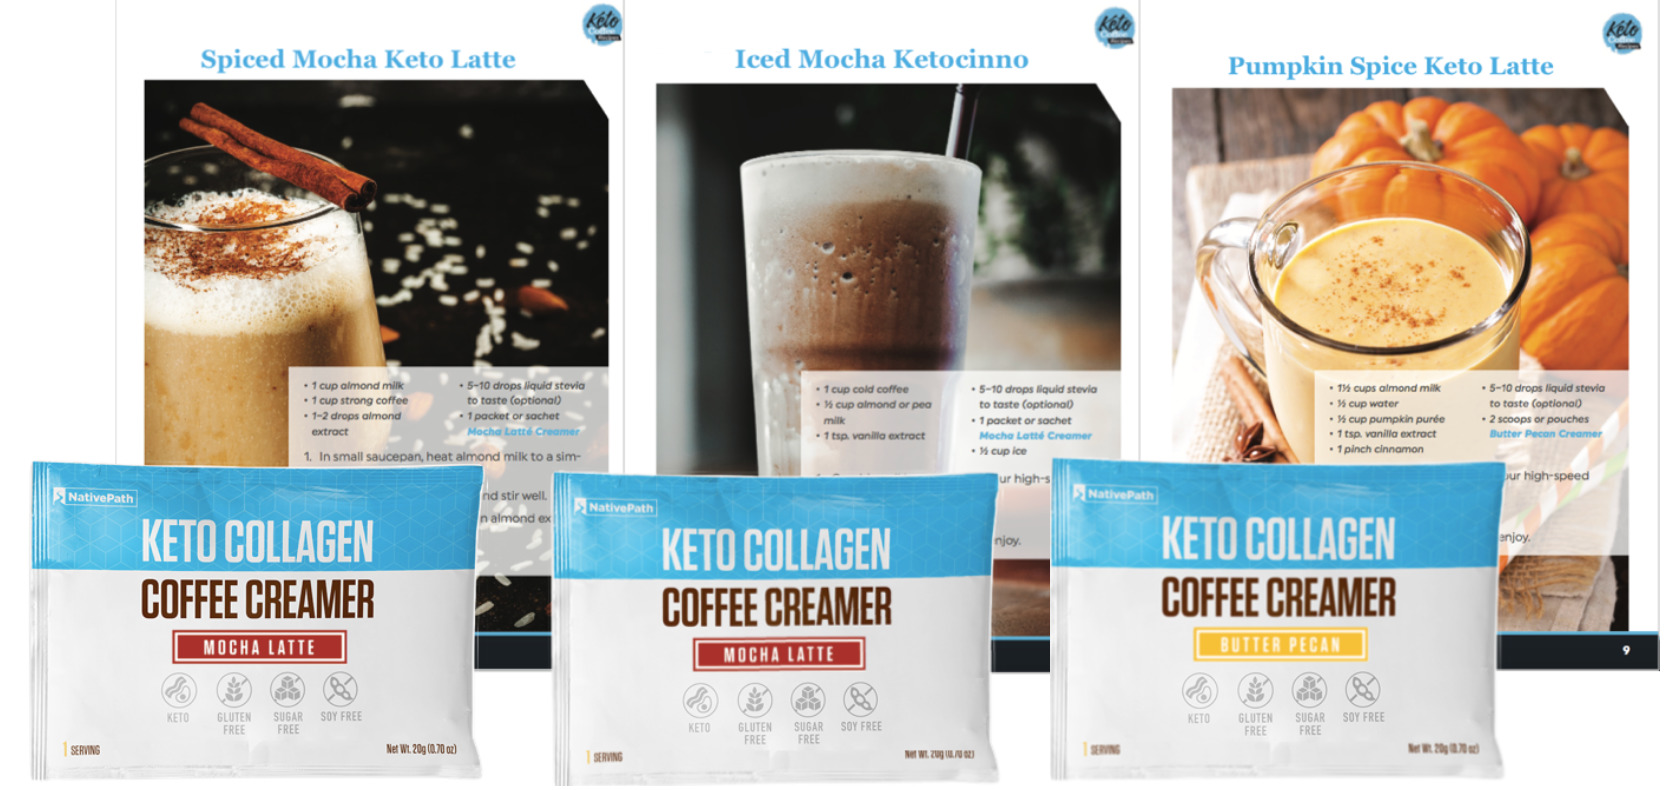 Keto Collagen Coffee Creamer Review - The Best Keto Coffee